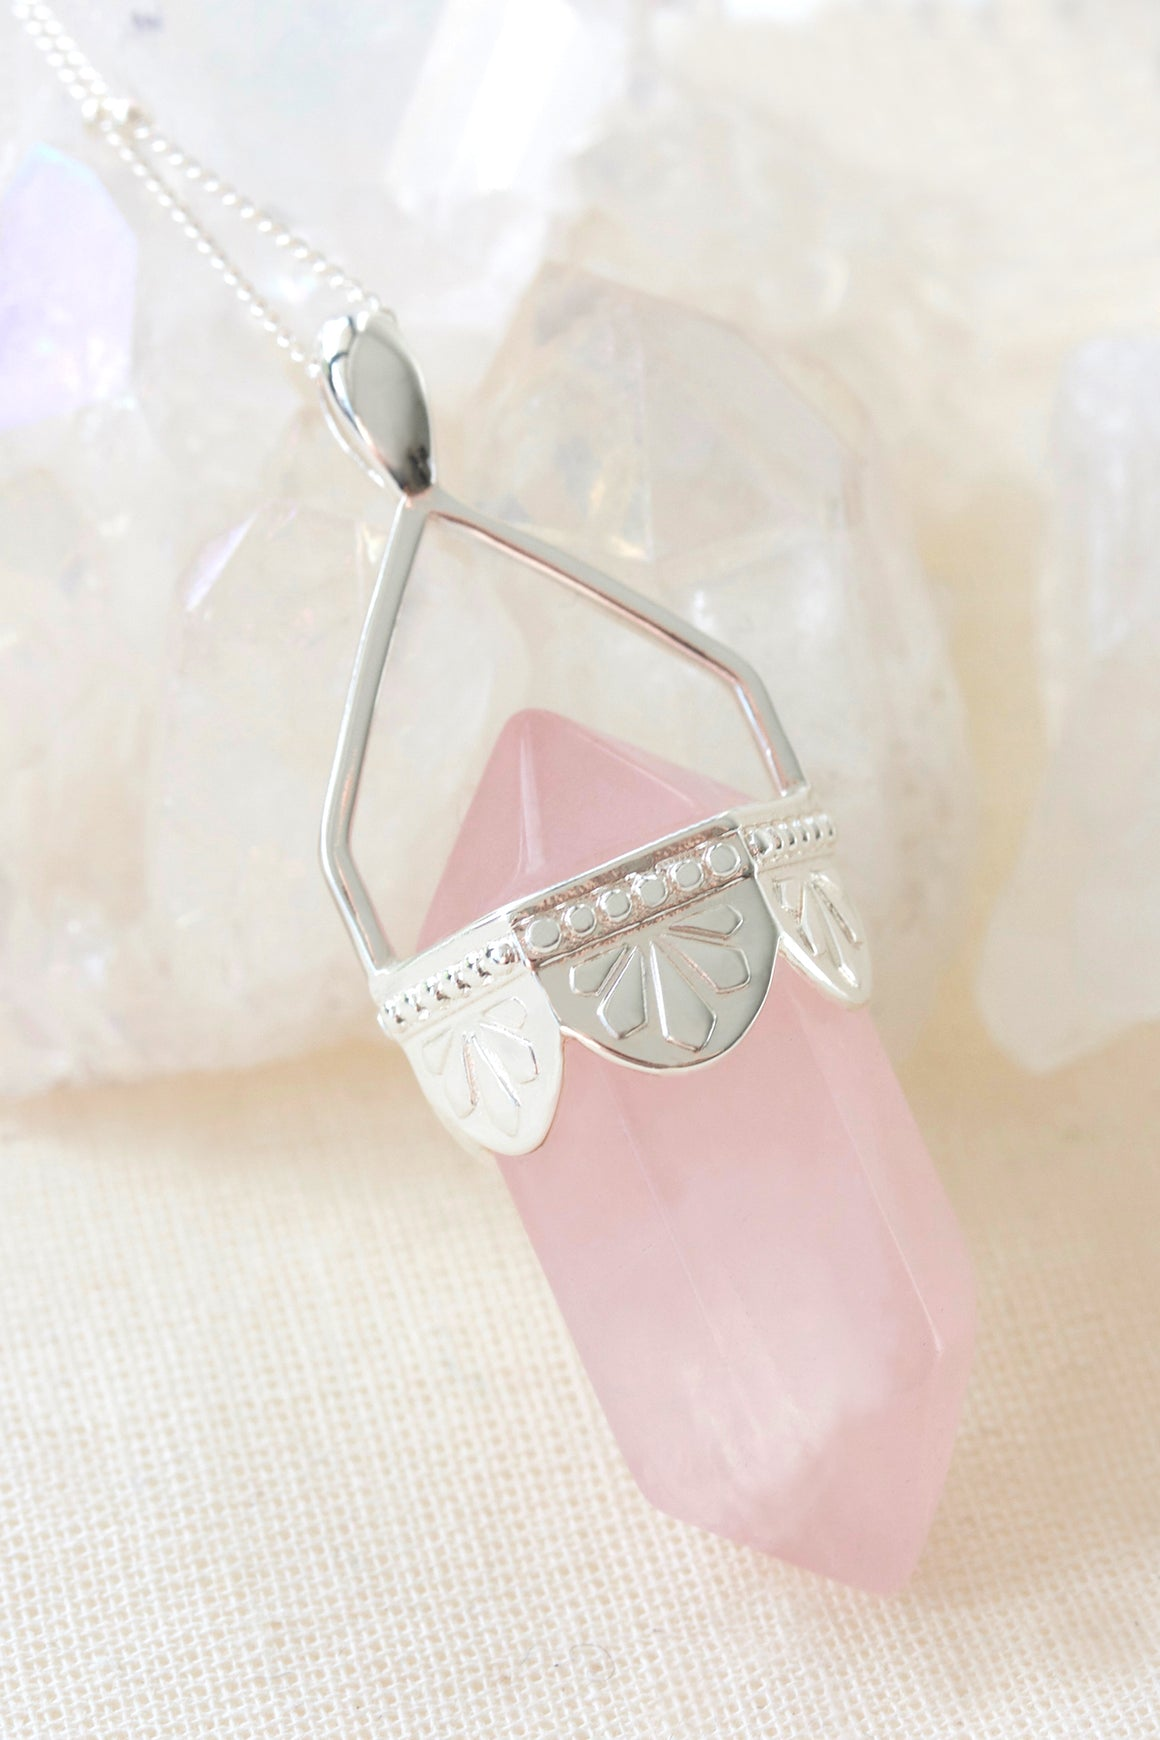 Rose Quartz Pendulum Necklace - Silver